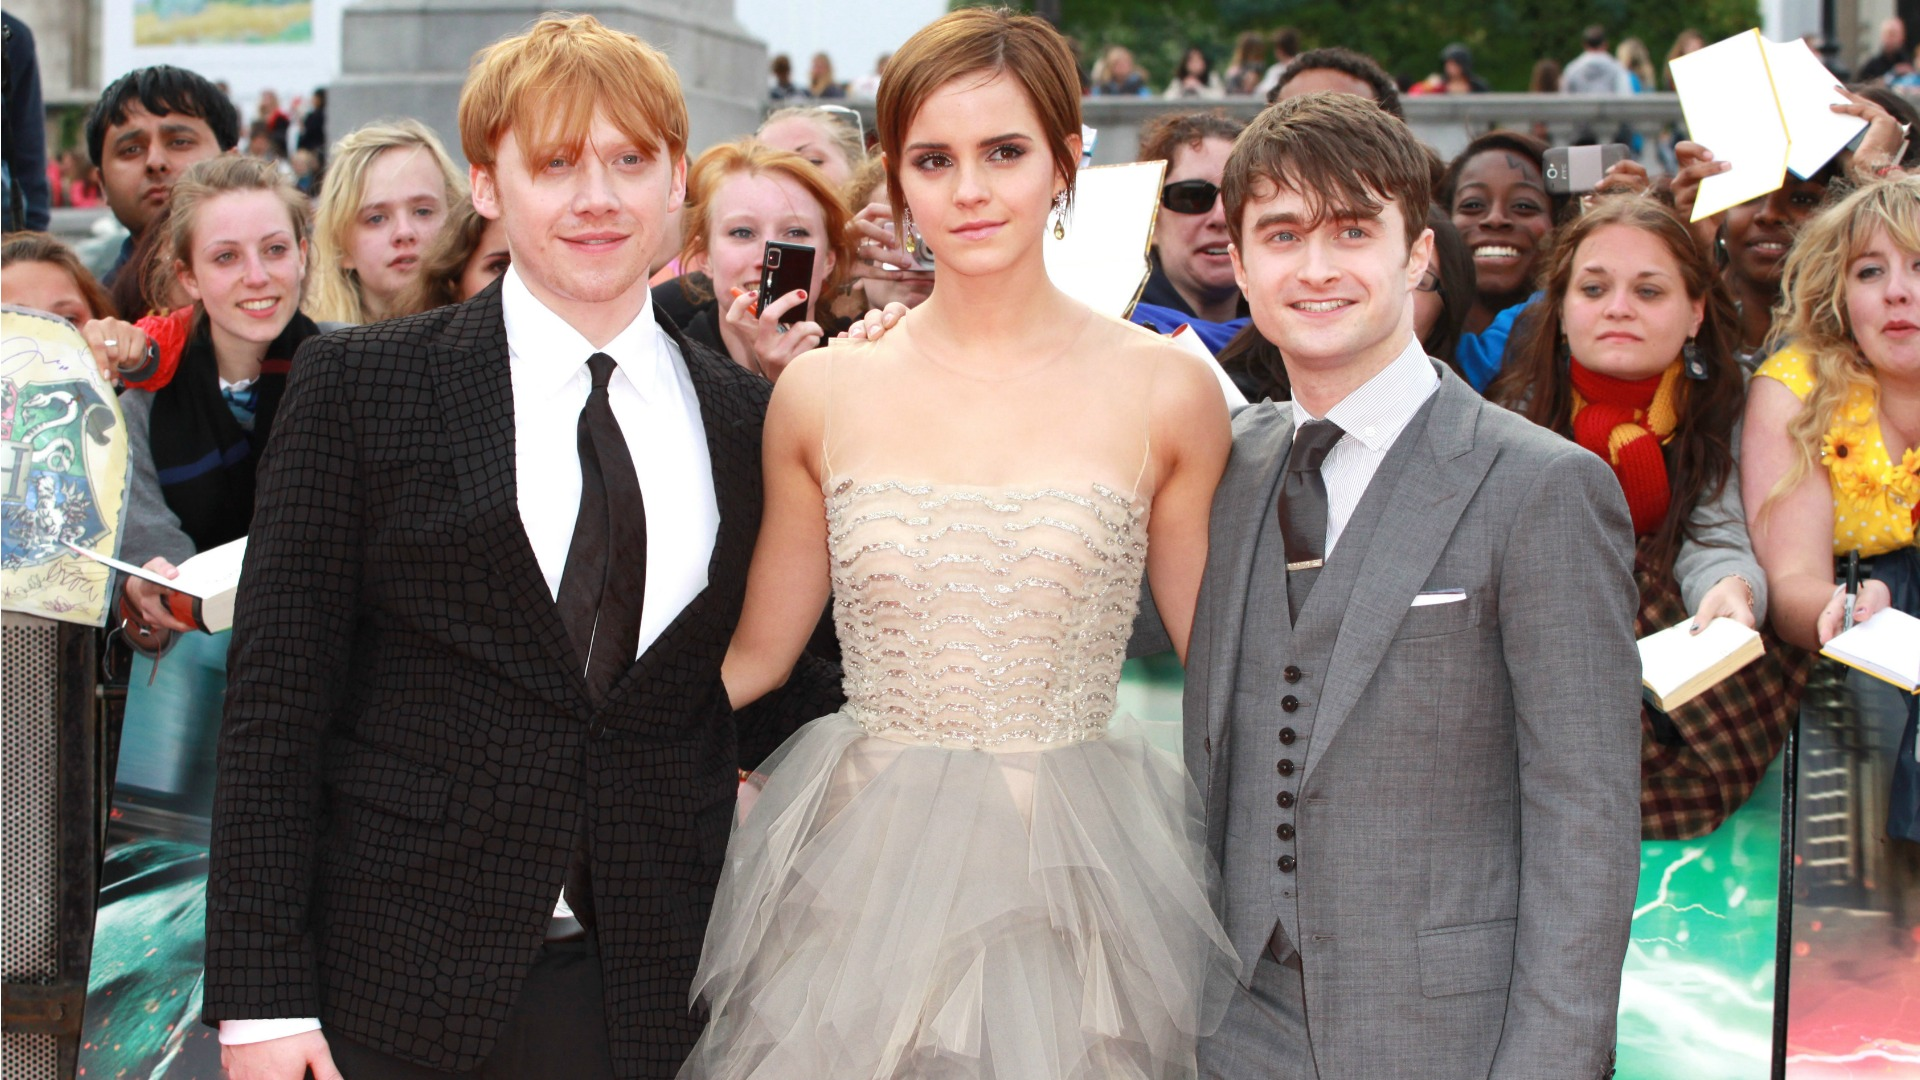 Glimpse into the life of Harry Potter in his 30s